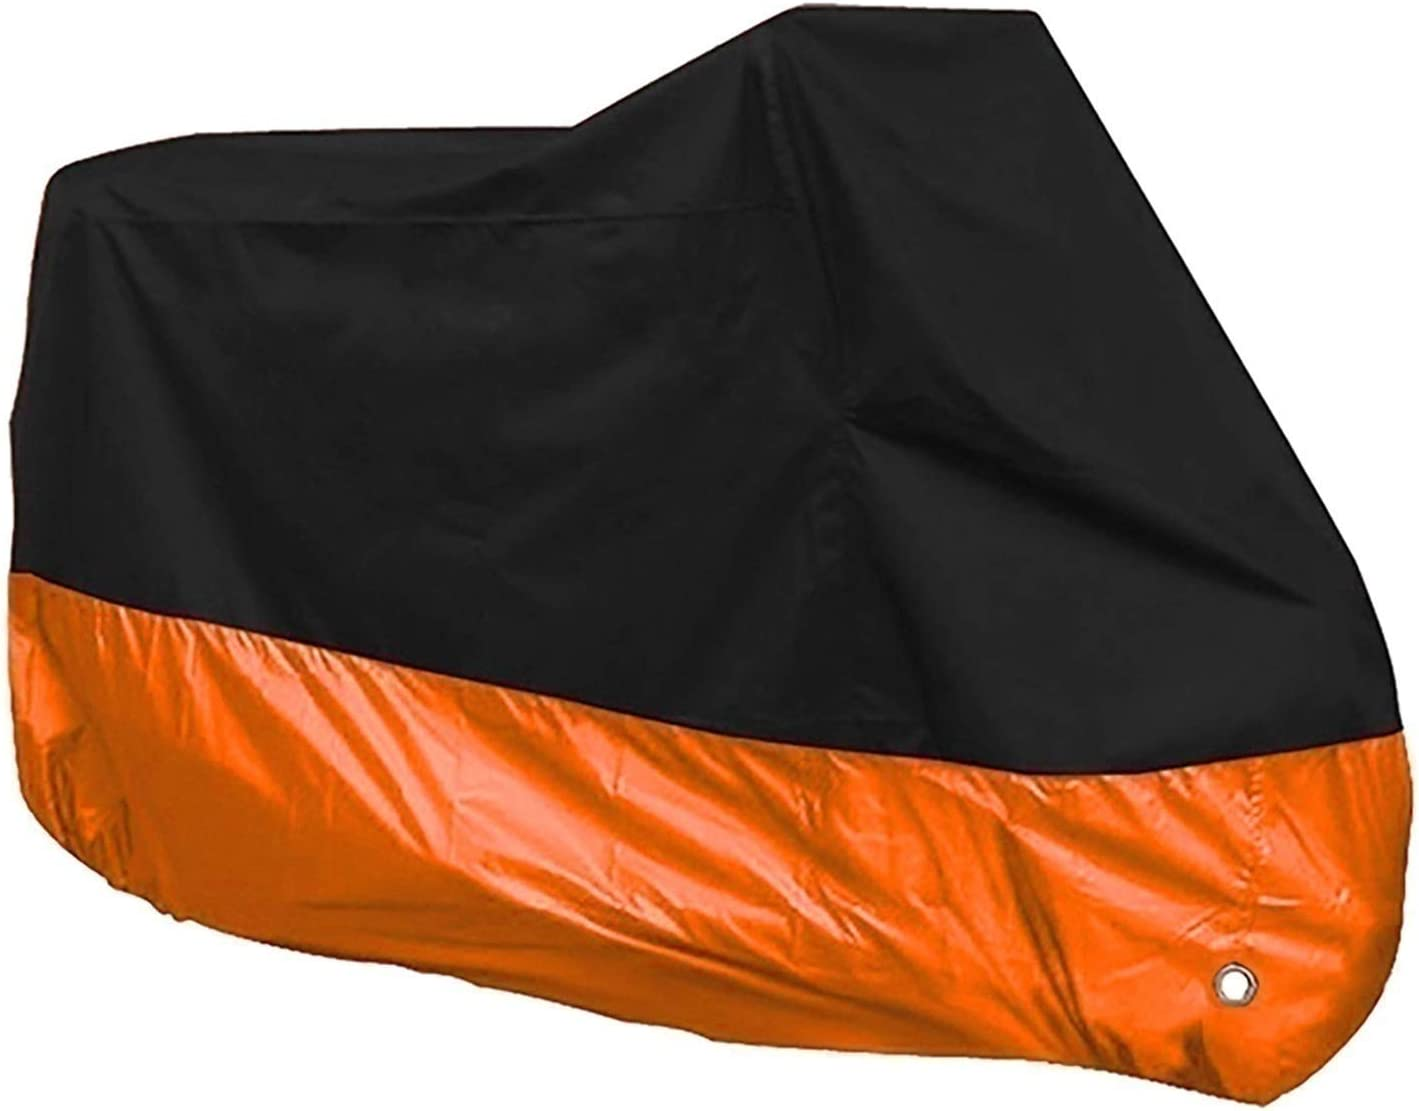 Cash special price 35% OFF Saladplates-LXM Motorcycle Cover with Compatible Cove